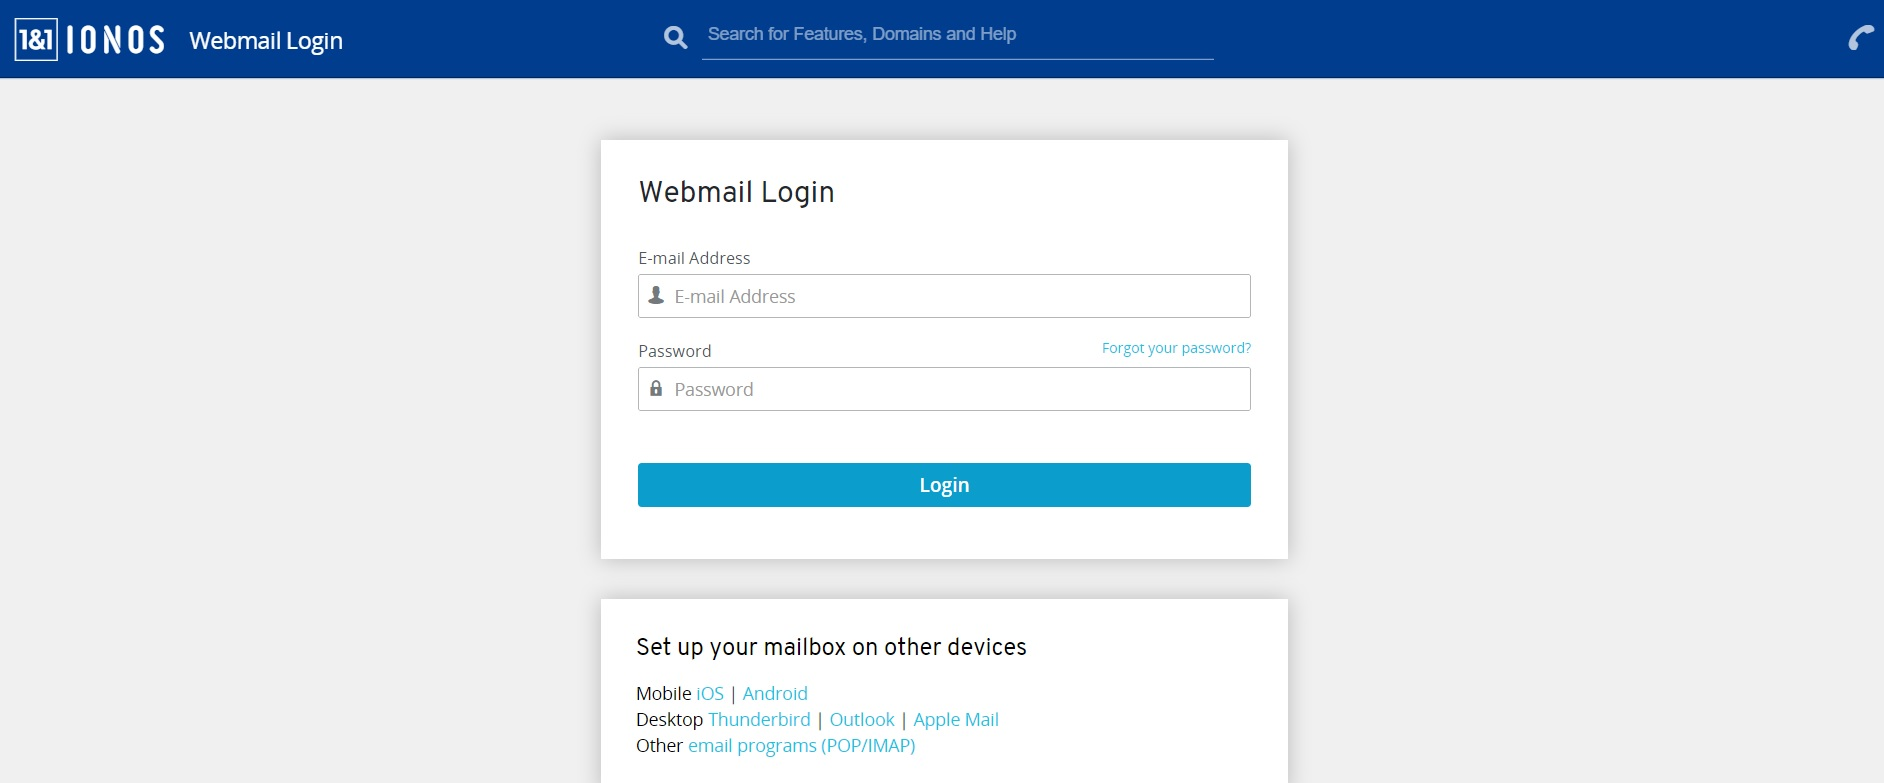 How to Log into Webmail 1and1